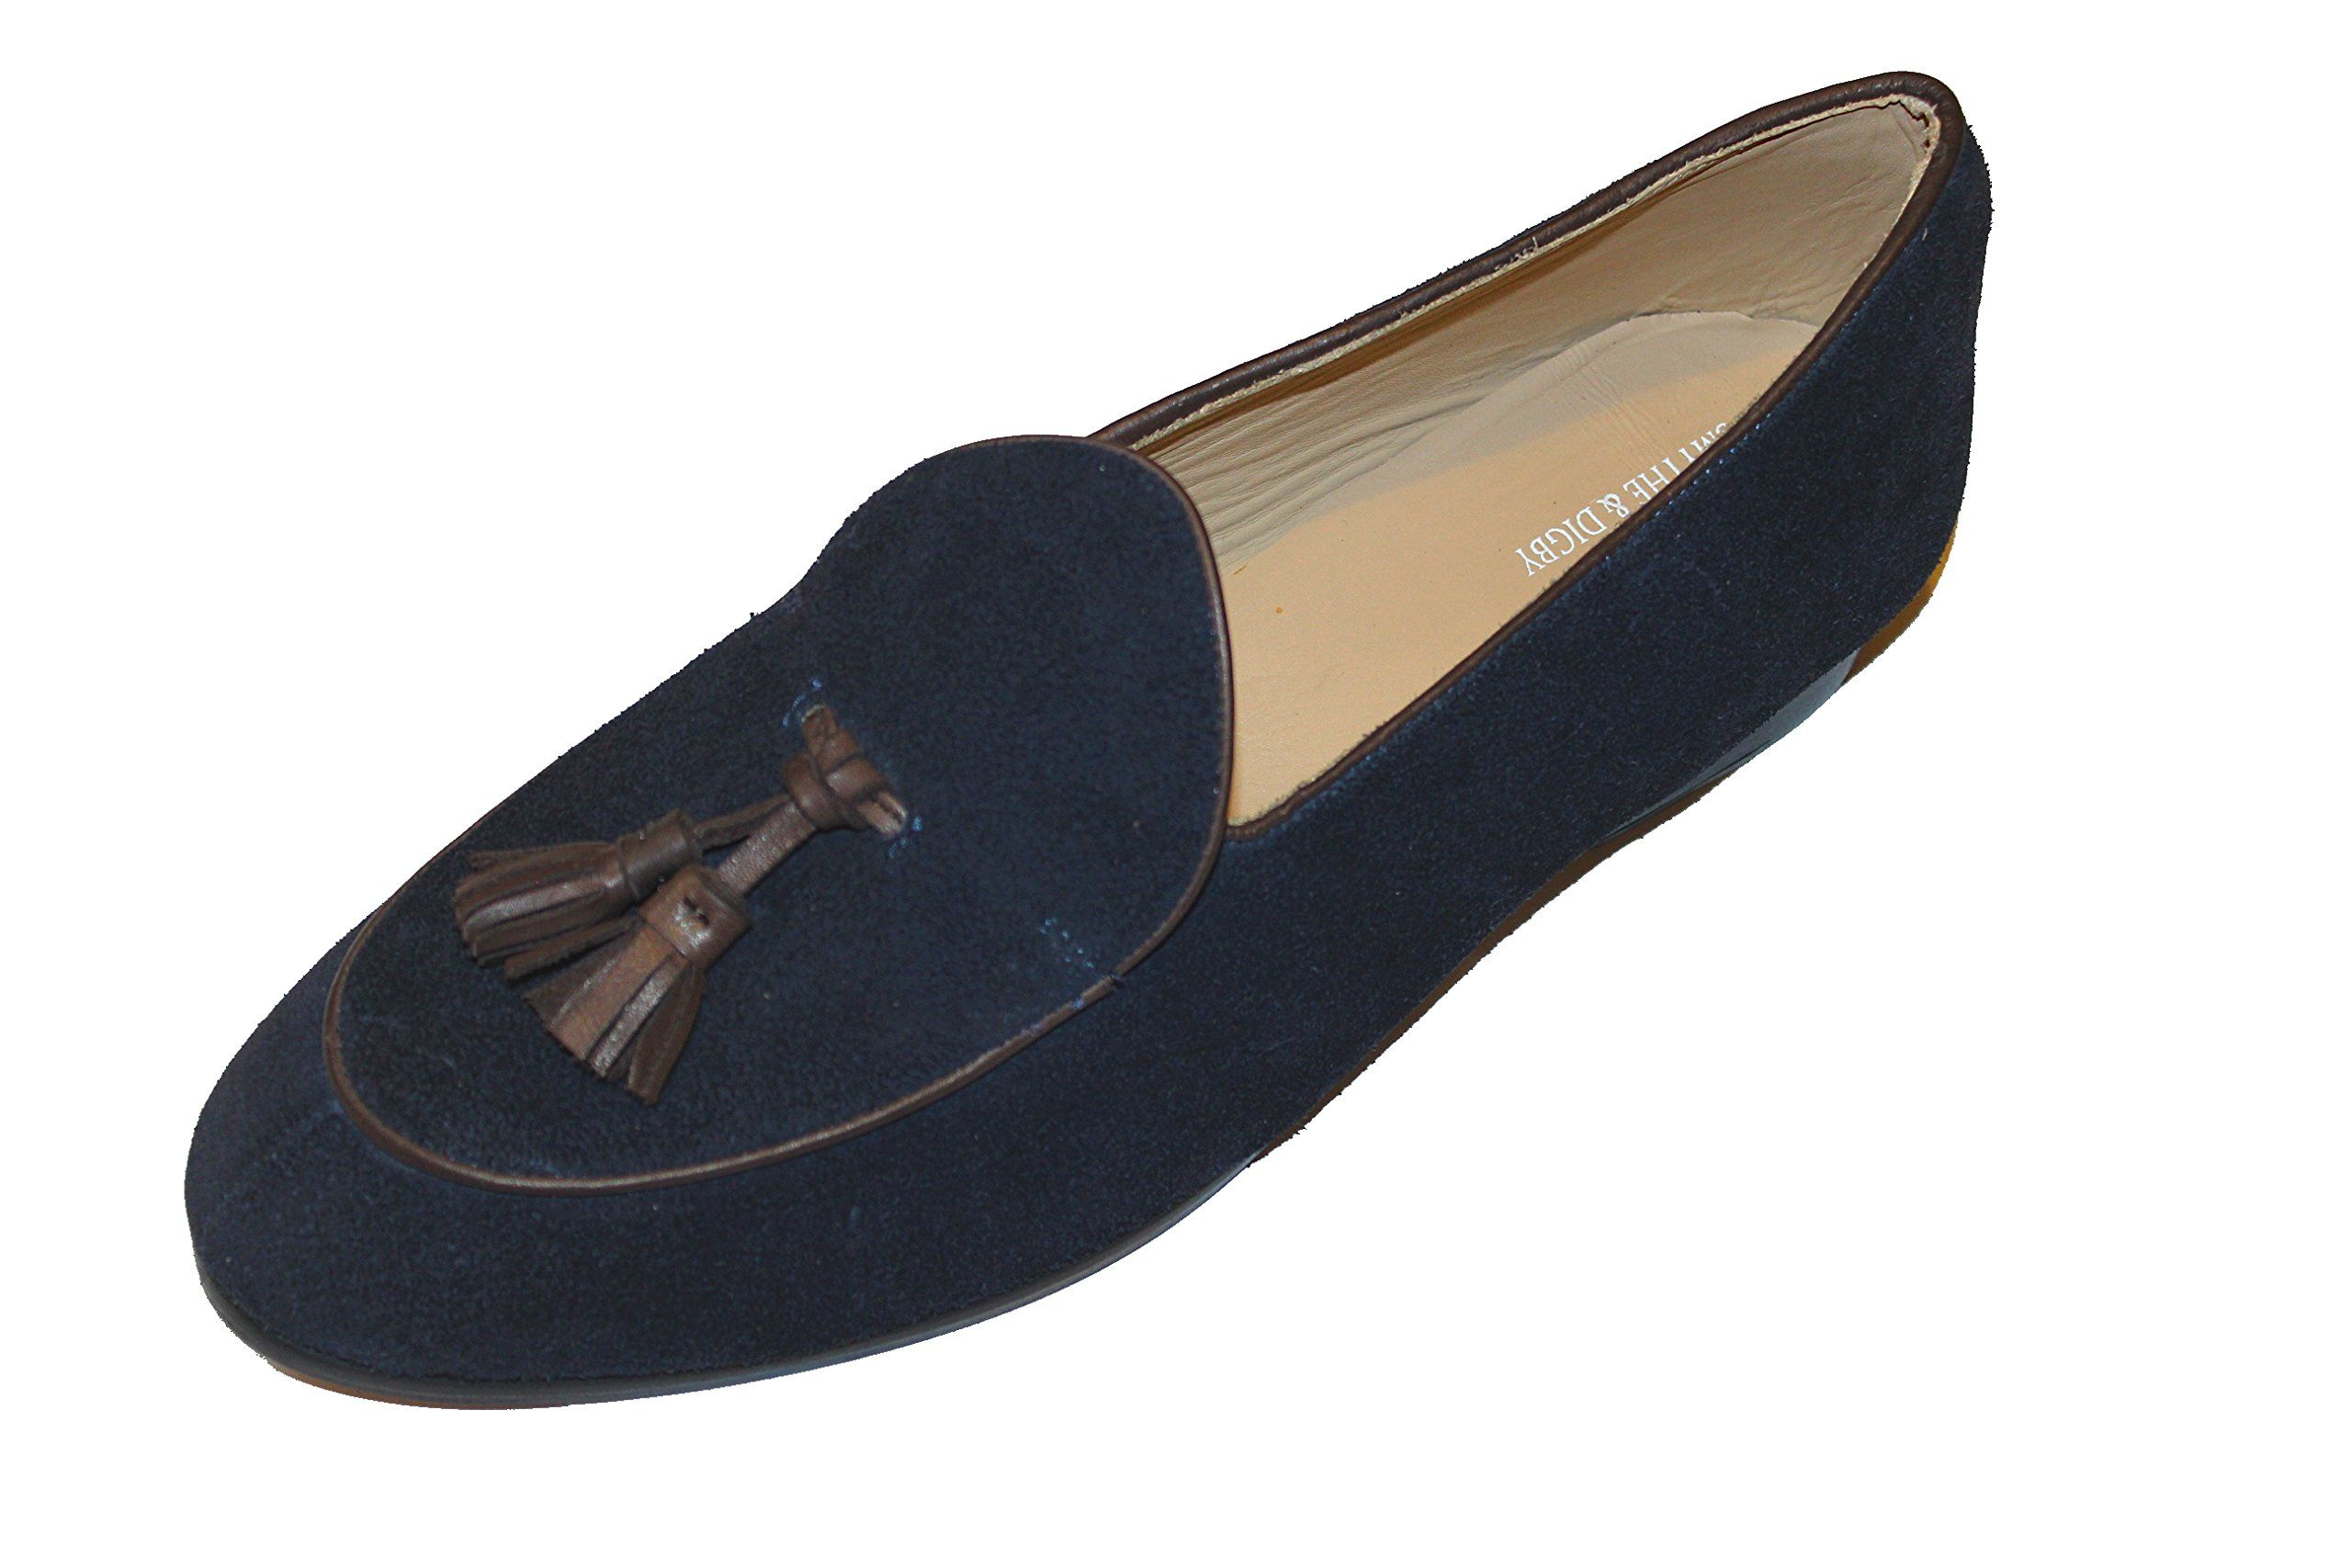 07807e554d032 Smythe & Digby Men's Navy Blue Suede Belgian Loafers with Tassels ...